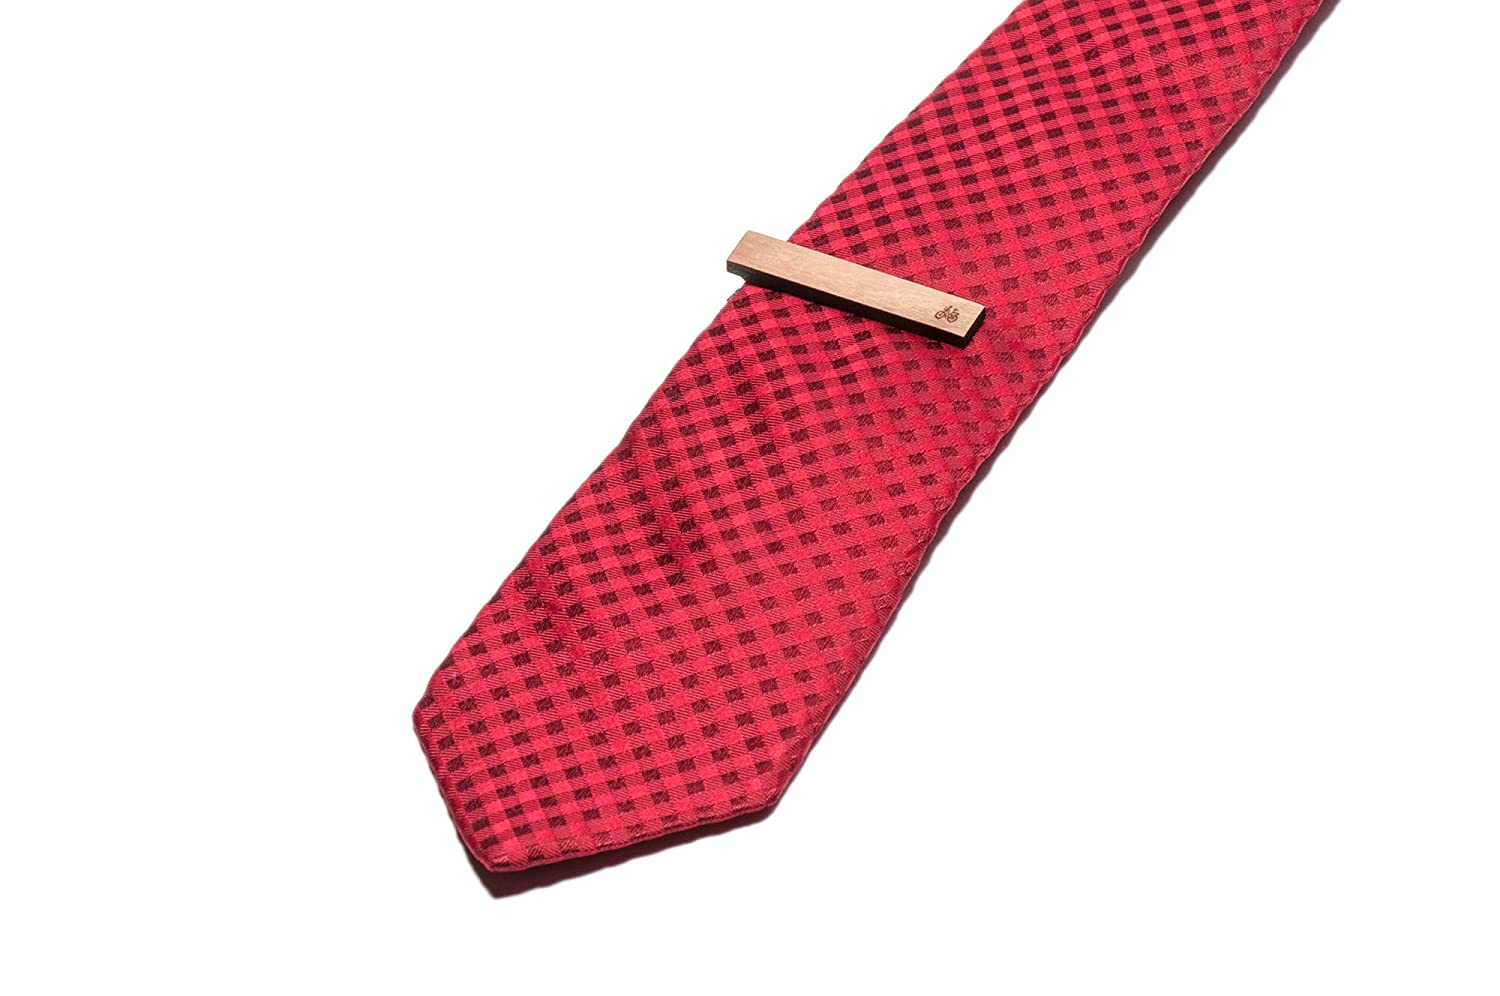 Wooden Accessories Company Wooden Tie Clips with Laser Engraved Dutch Bicycle Design Cherry Wood Tie Bar Engraved in The USA